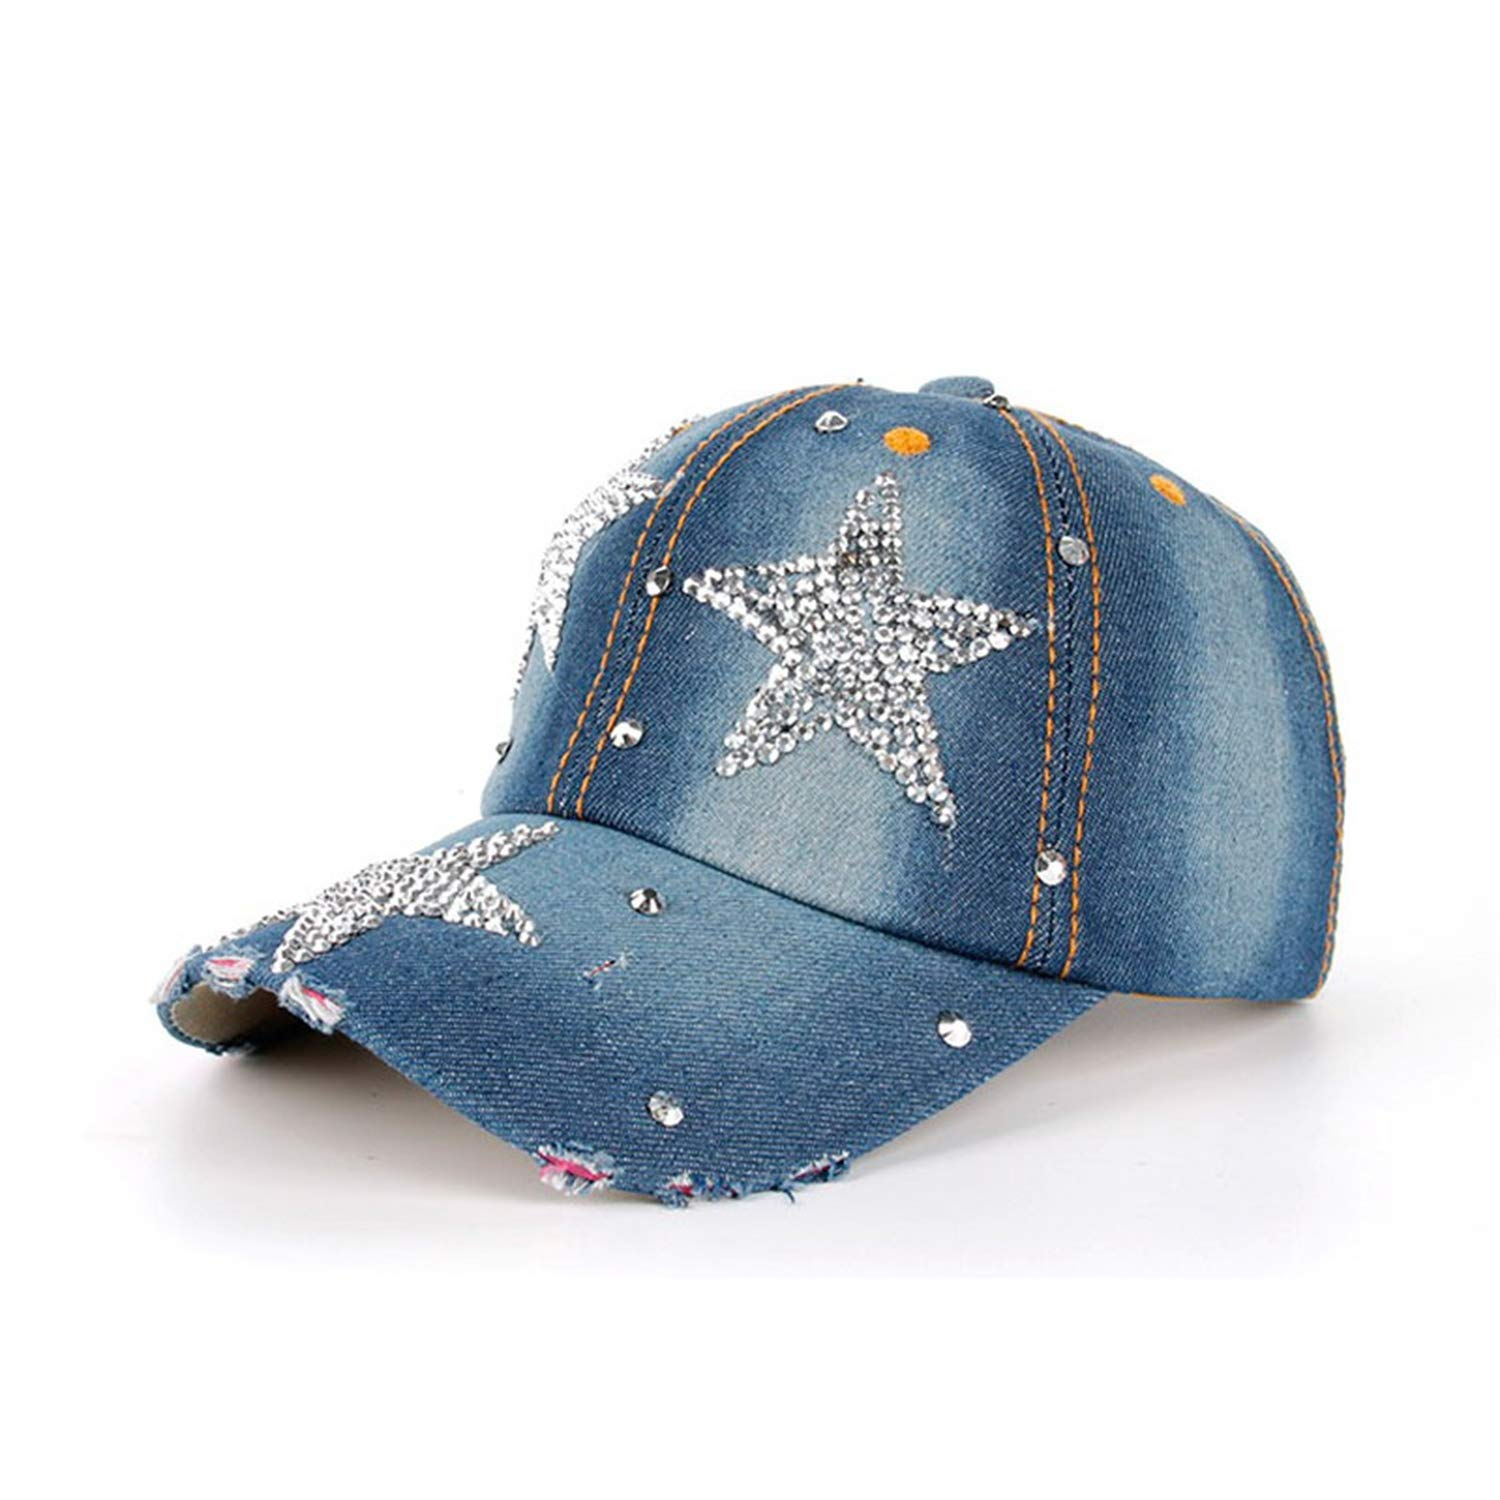 Mageed Anna Womens Baseball Rhinestone Drill Bling Hat Girl Handmade Crystal Cap Denim Visor Cap